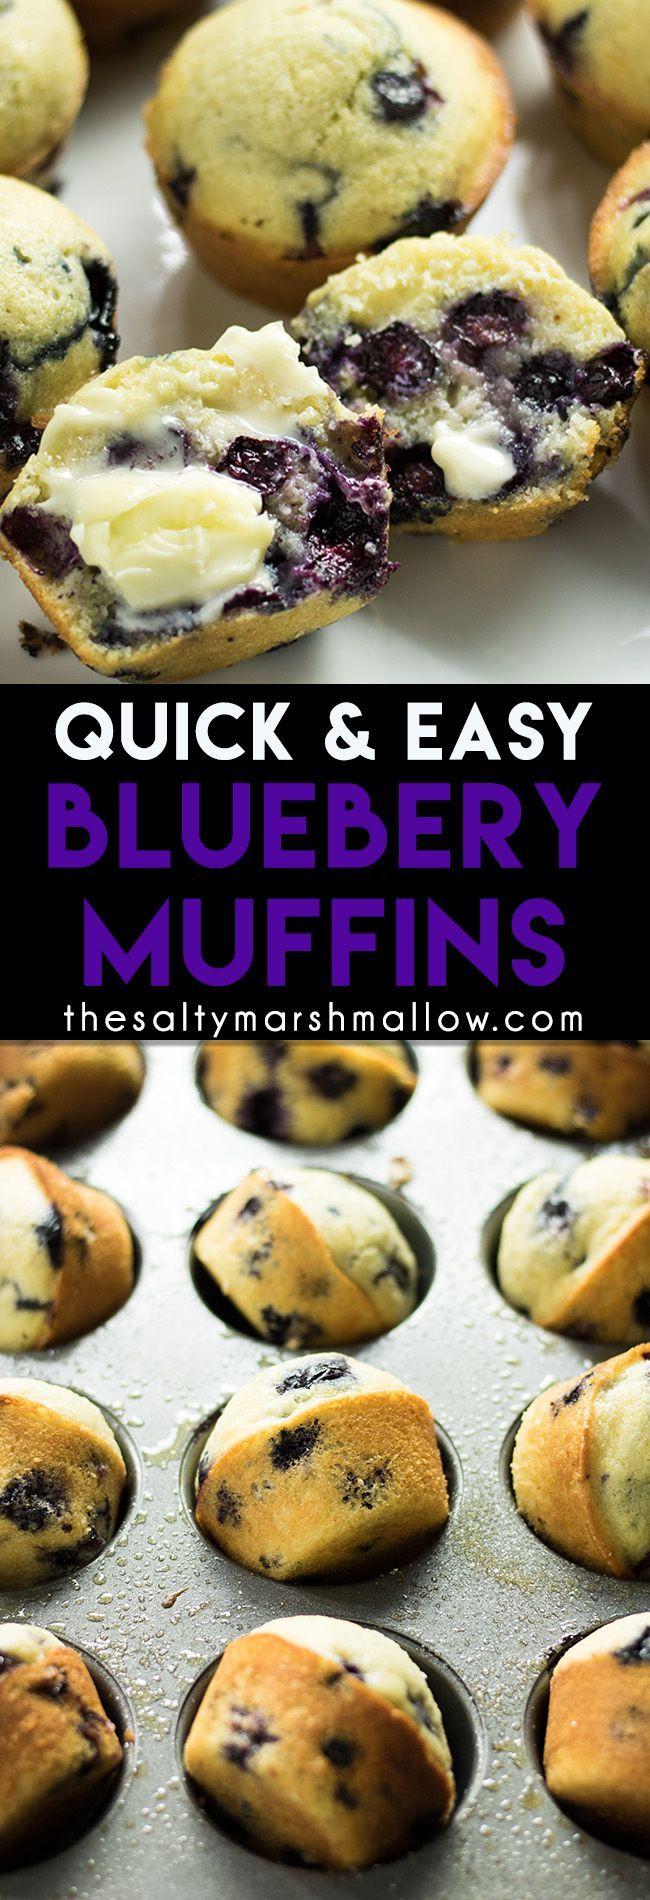 Easy Blueberry Muffins: My favorite quick and easy blueberry muffin recipe!  These muffins take one bowl and are ready in 30 minutes.